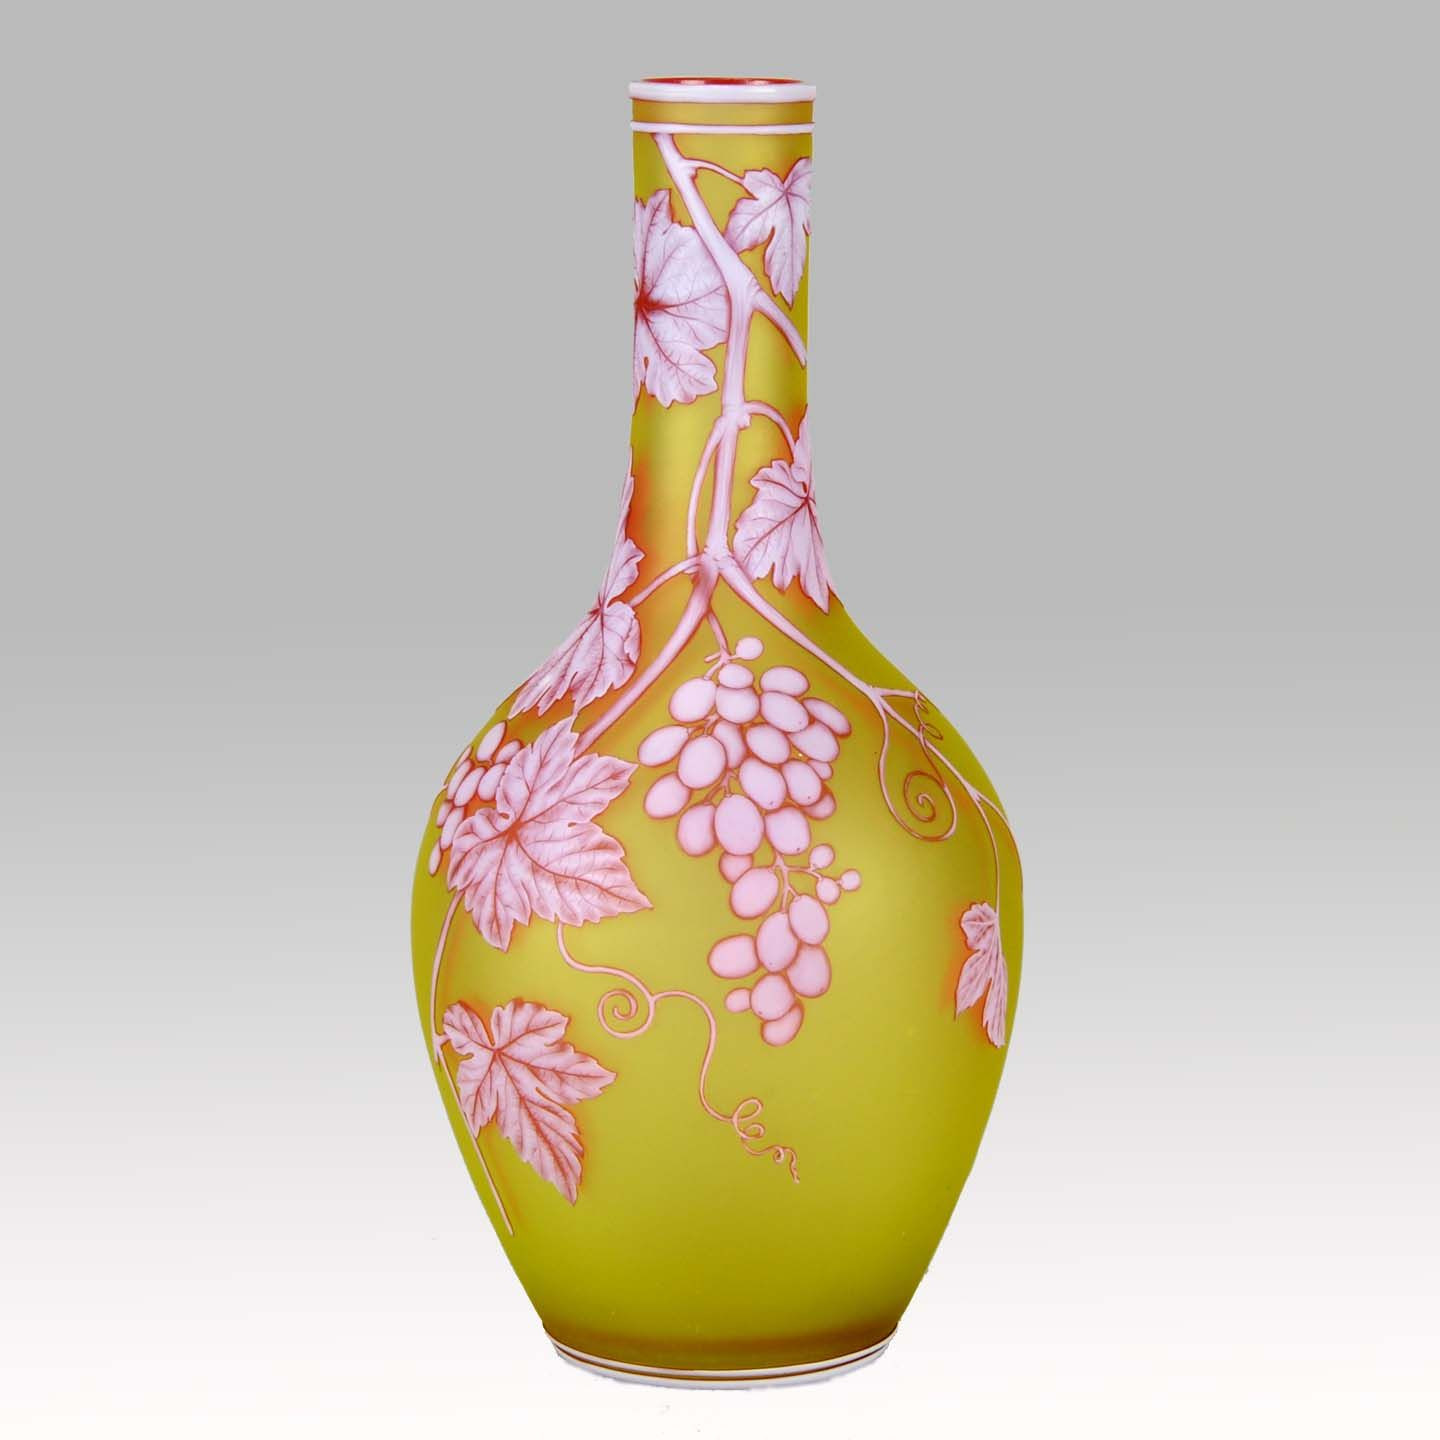 Cameo Glass Vase Of Cameo Webb Vase Hickmet Fine Arts Ceramics Glass Pinterest Inside Cameo Webb Vase Hickmet Fine Arts